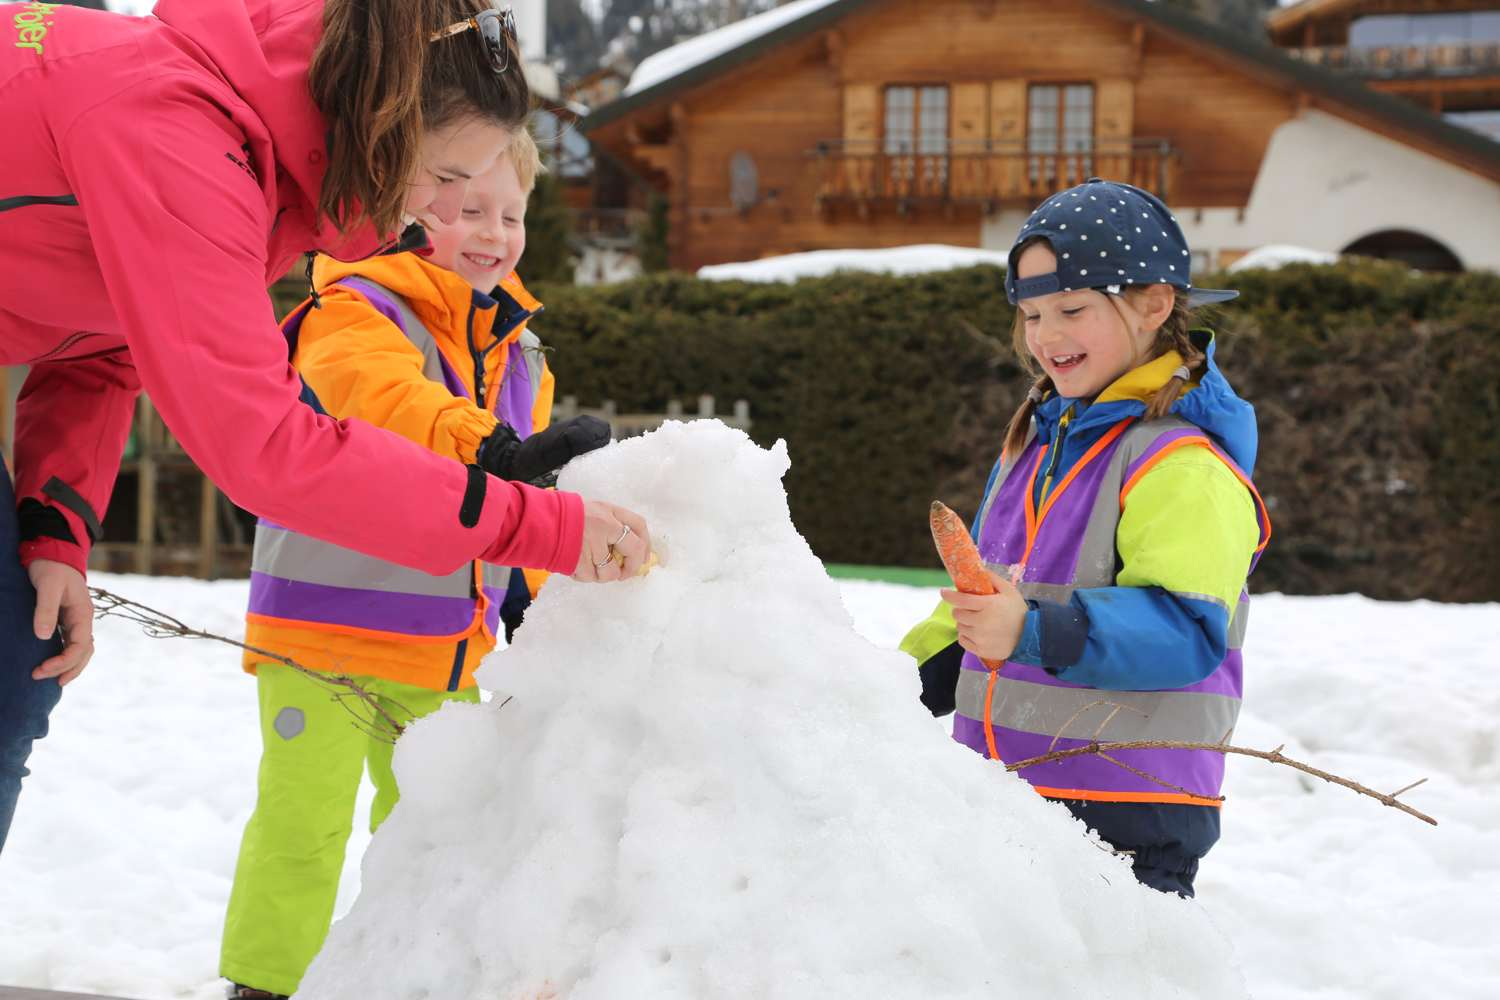 children playing in the snow building a snowman